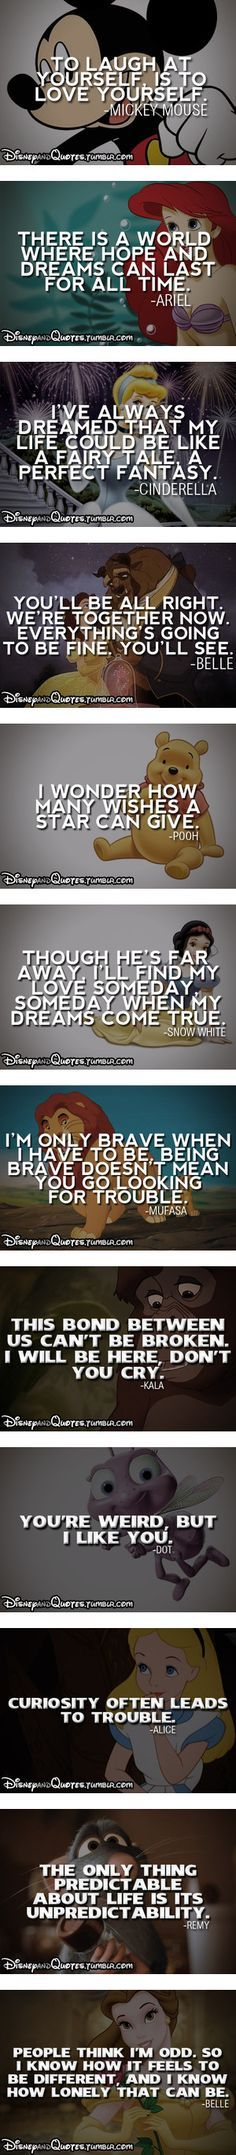 Nice collection if you're looking for Disney inspiration!